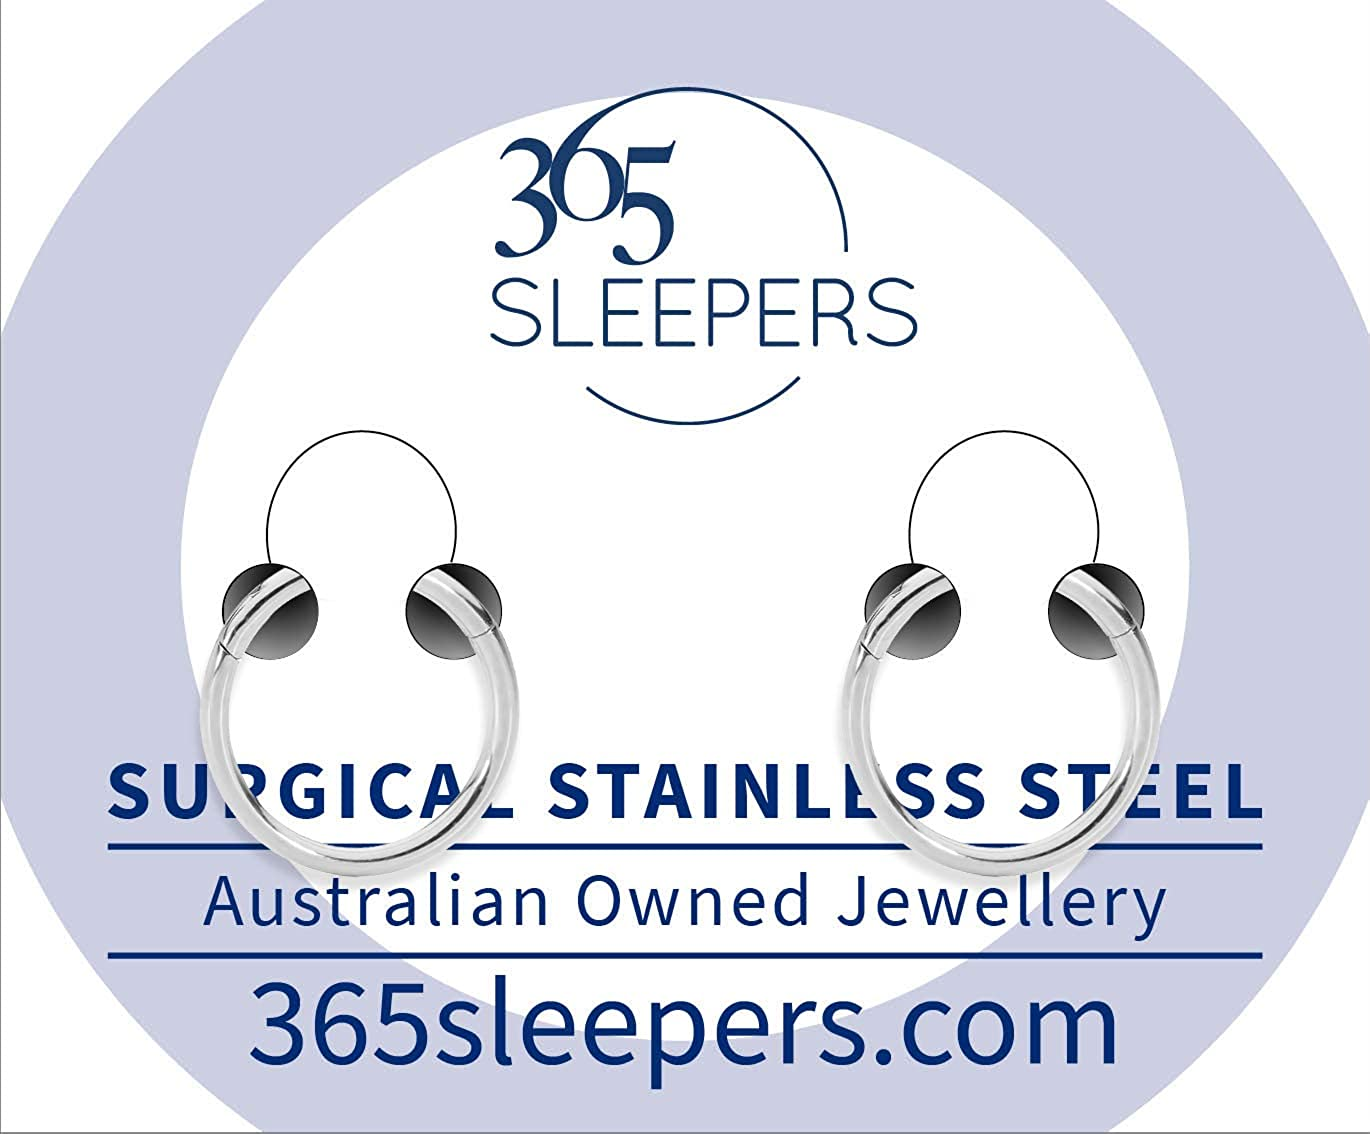 365 Sleepers 2 Pcs Stainless Steel 5/16